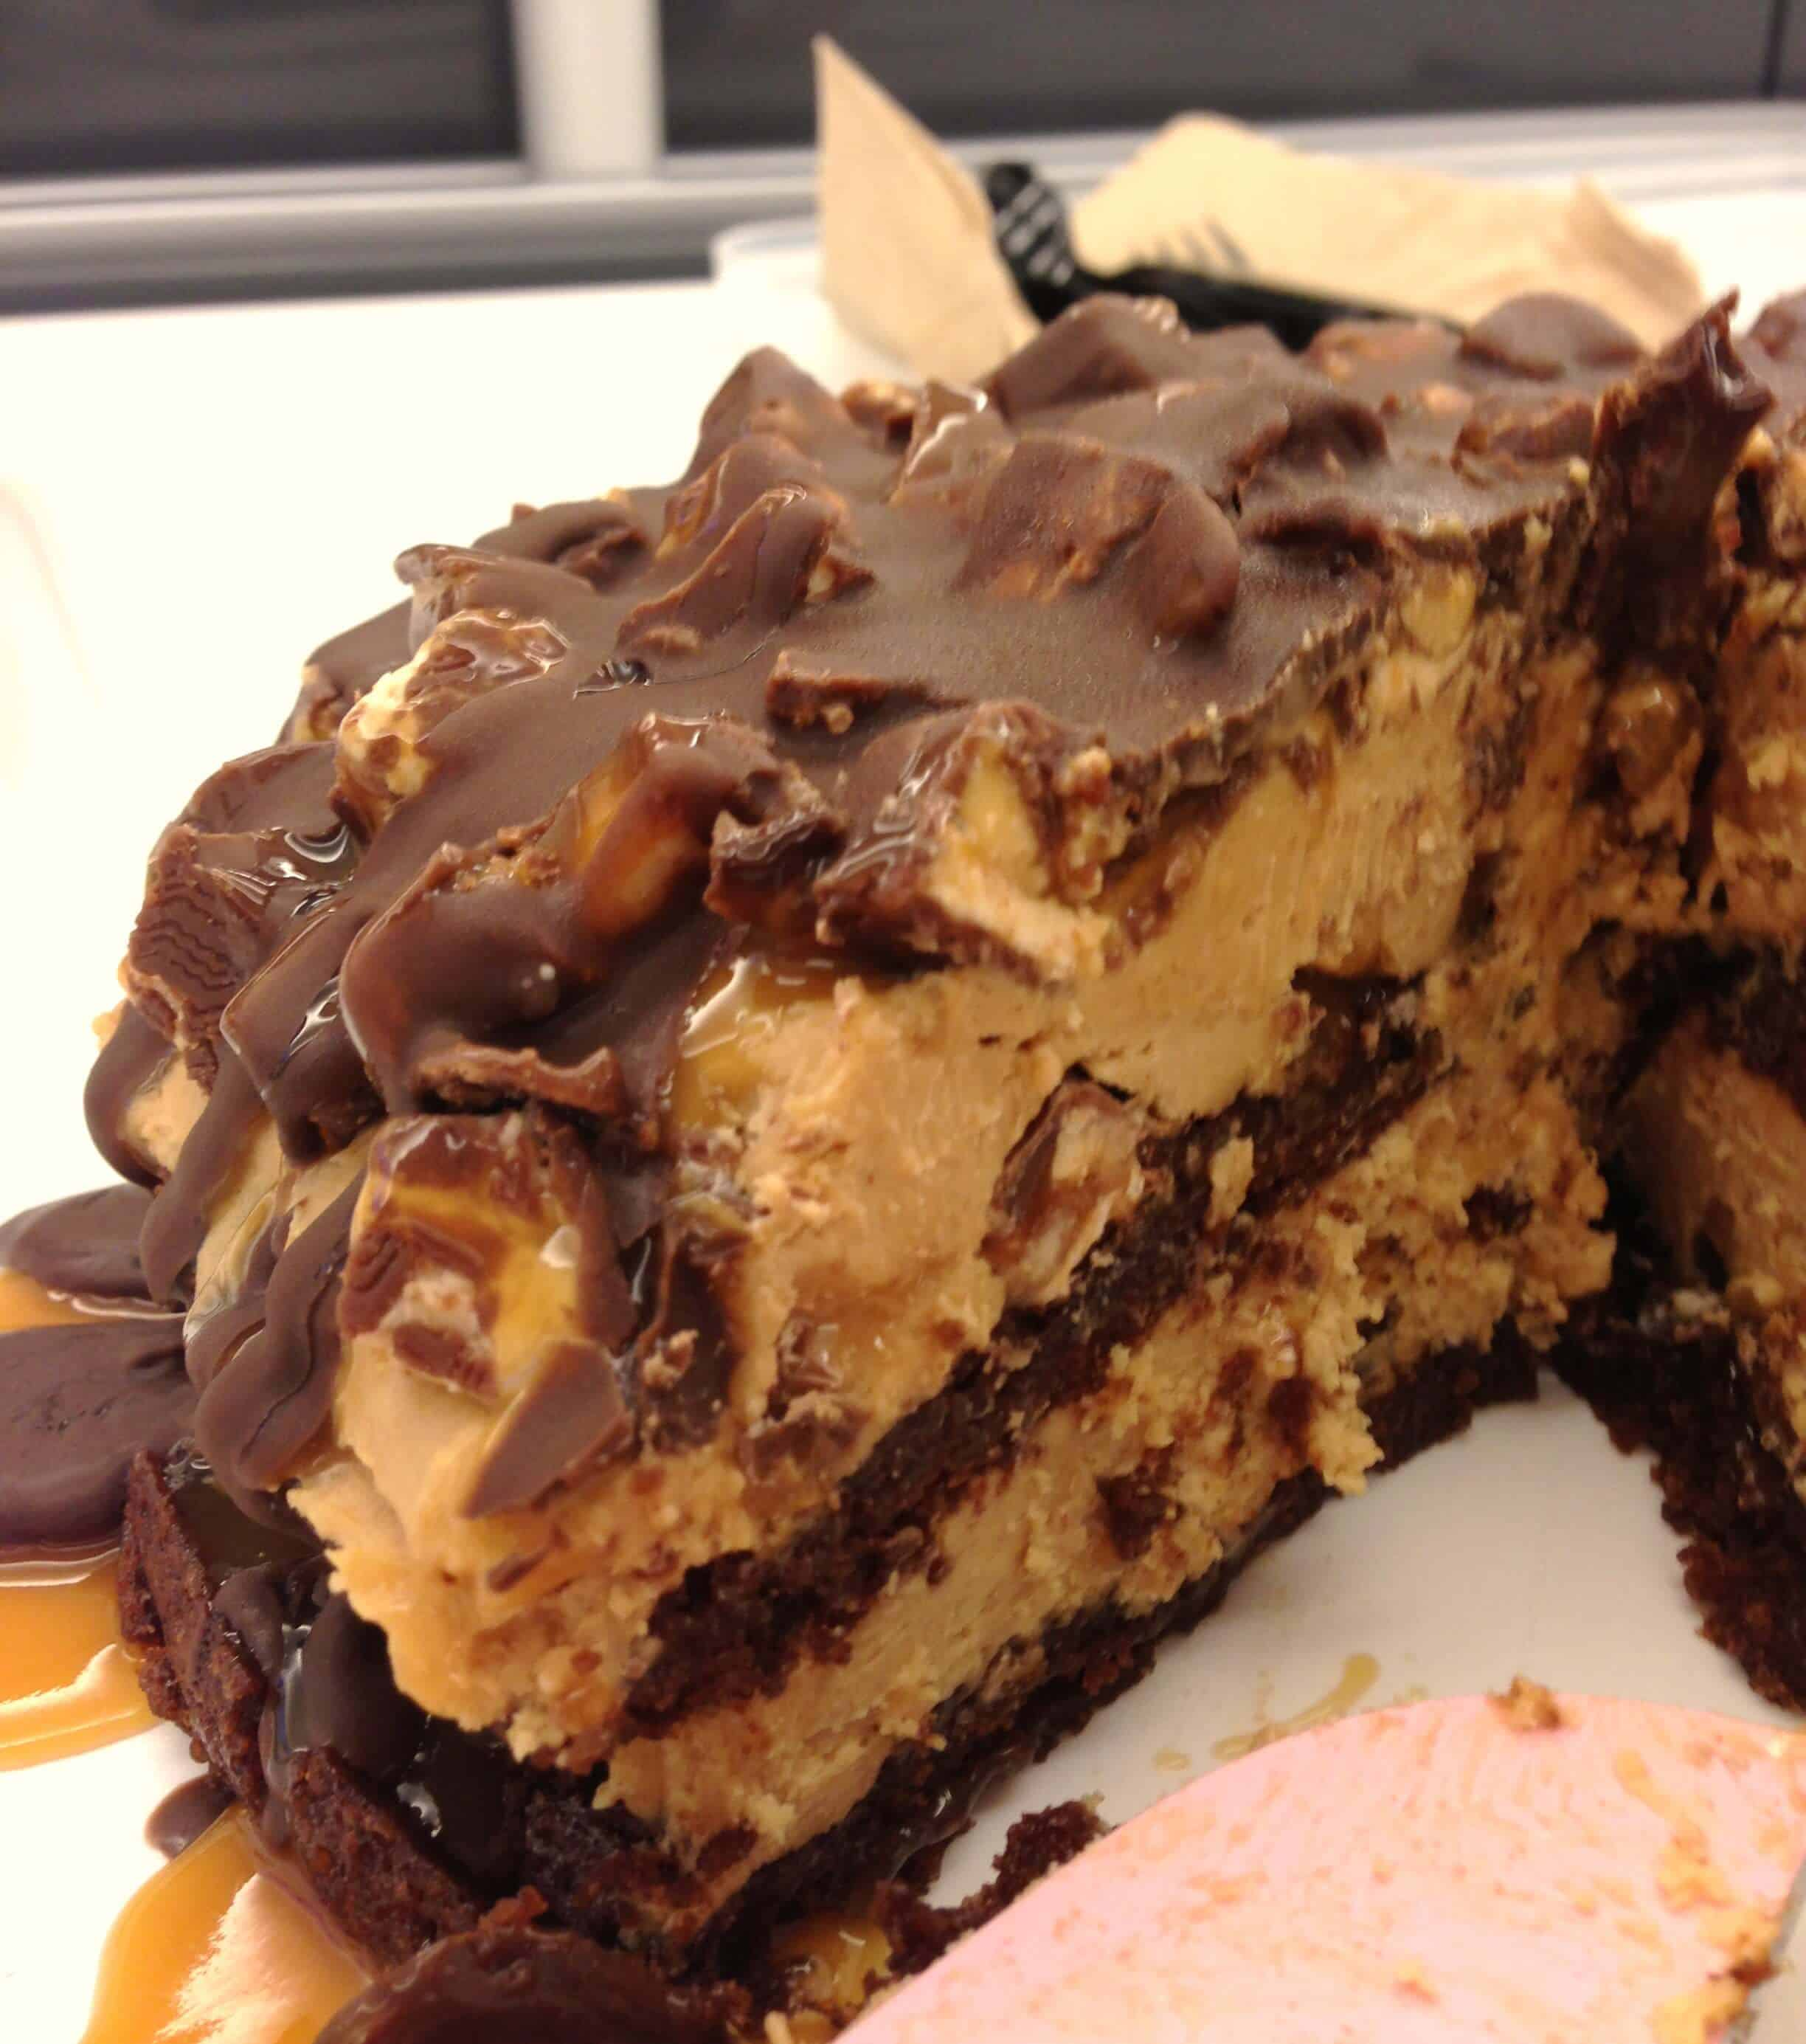 Snickers Ice Cream Cake Chelsweets Kue Brownis By Nature Cakes Bali I Then Let This Completely Freeze And Brought It Into Work Turned Out Wonderfully The Consistency Of Layer Was Perfect Frozen